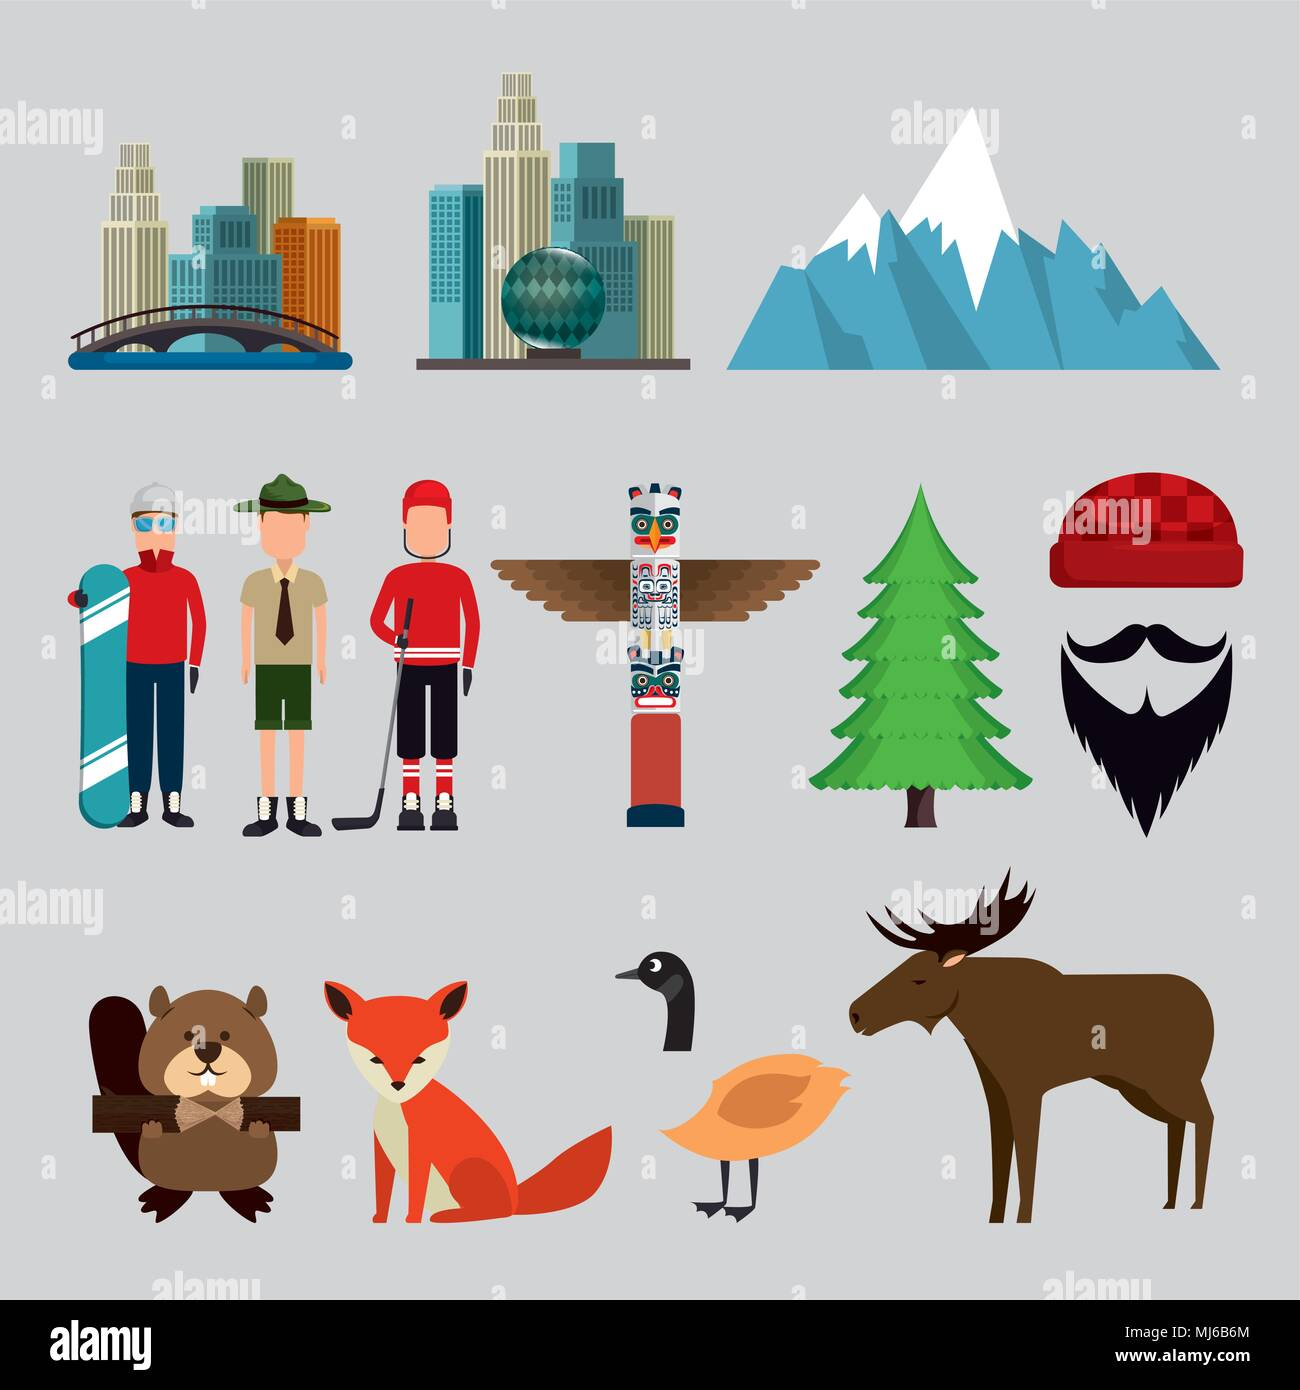 Canadian Culture Set Icons Stock Vector Art Illustration